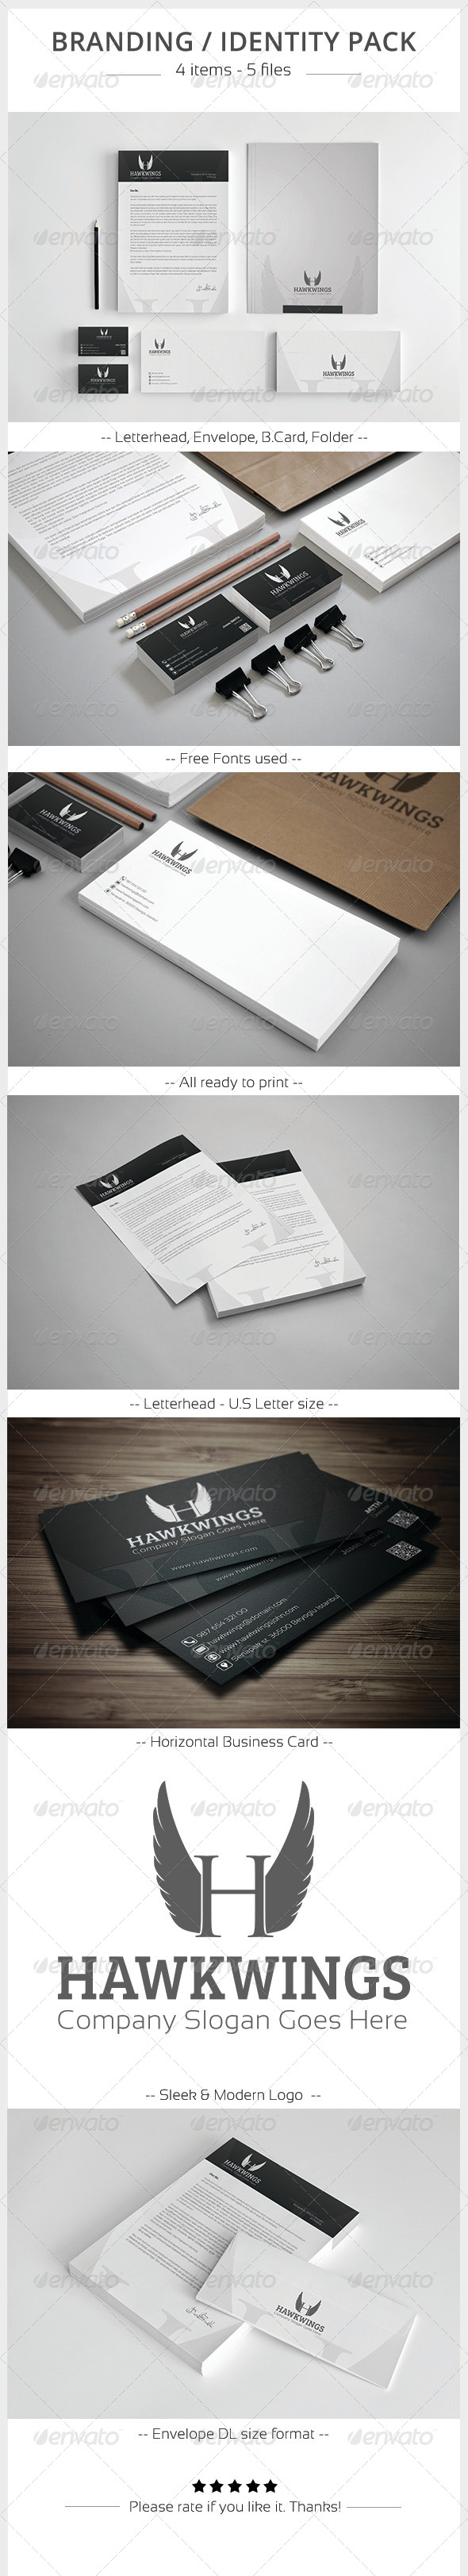 Hawkwings Corporate Identity Pack - Stationery Print Templates